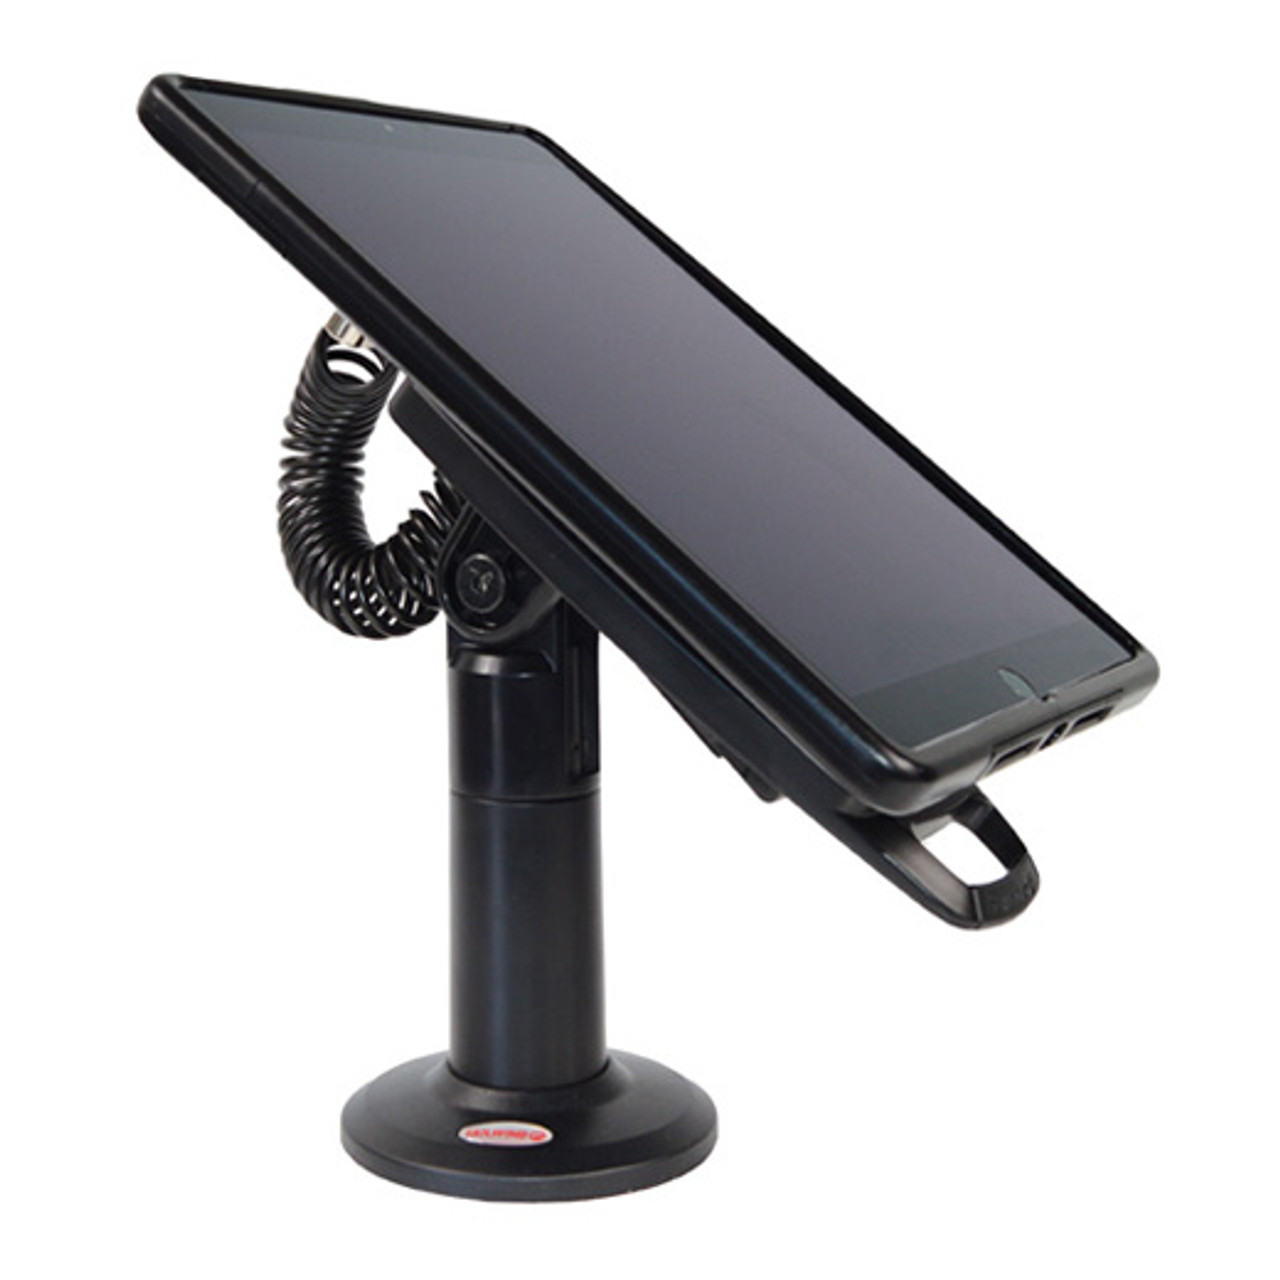 FlexiPole Complete iPad Air Tablet Stand Tethered